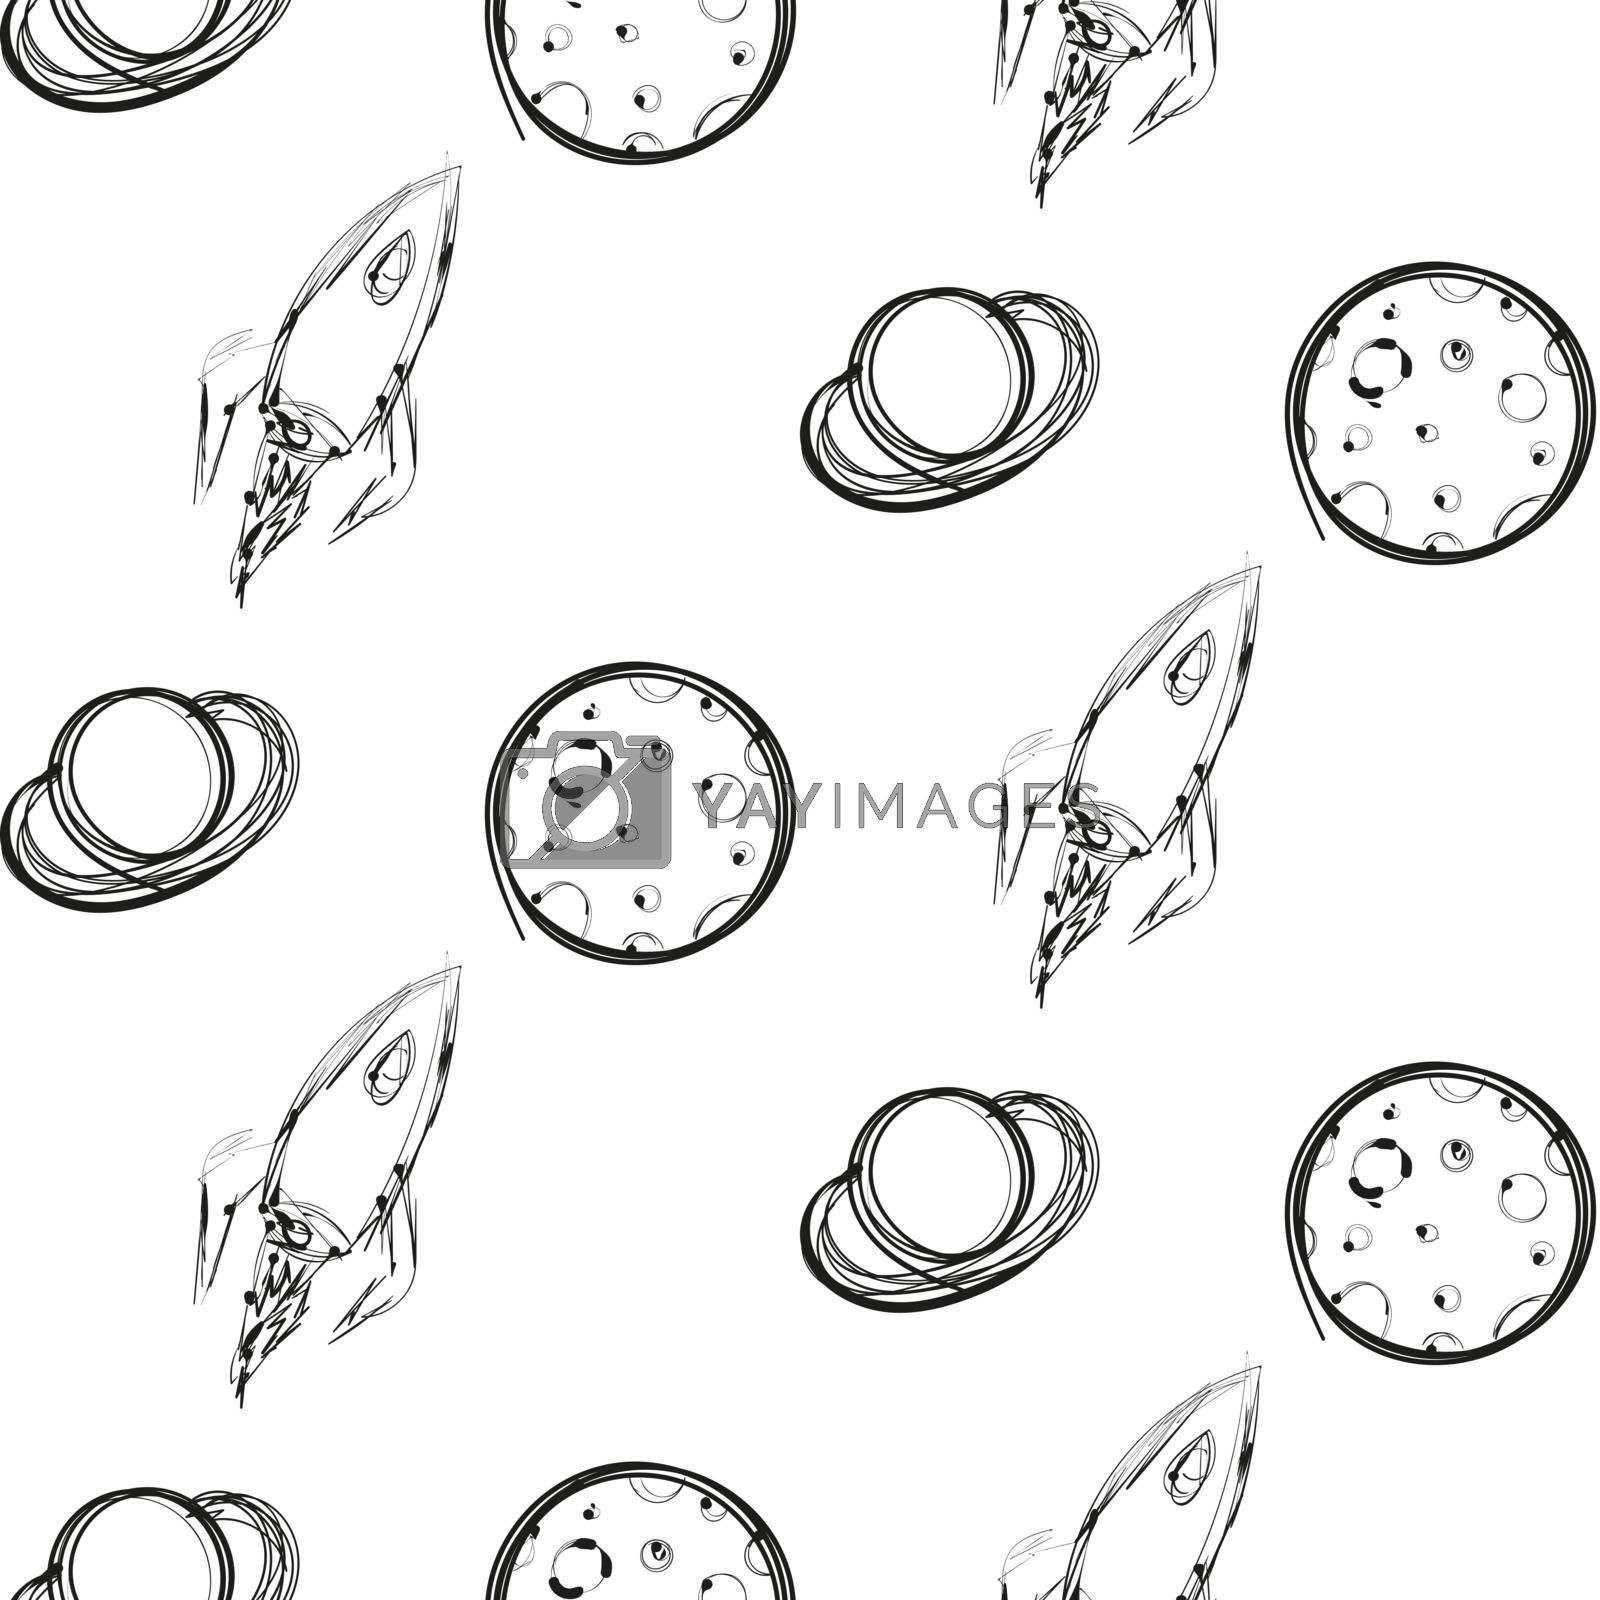 Planet and rocket ink imitation seamless pattern by tommarkov